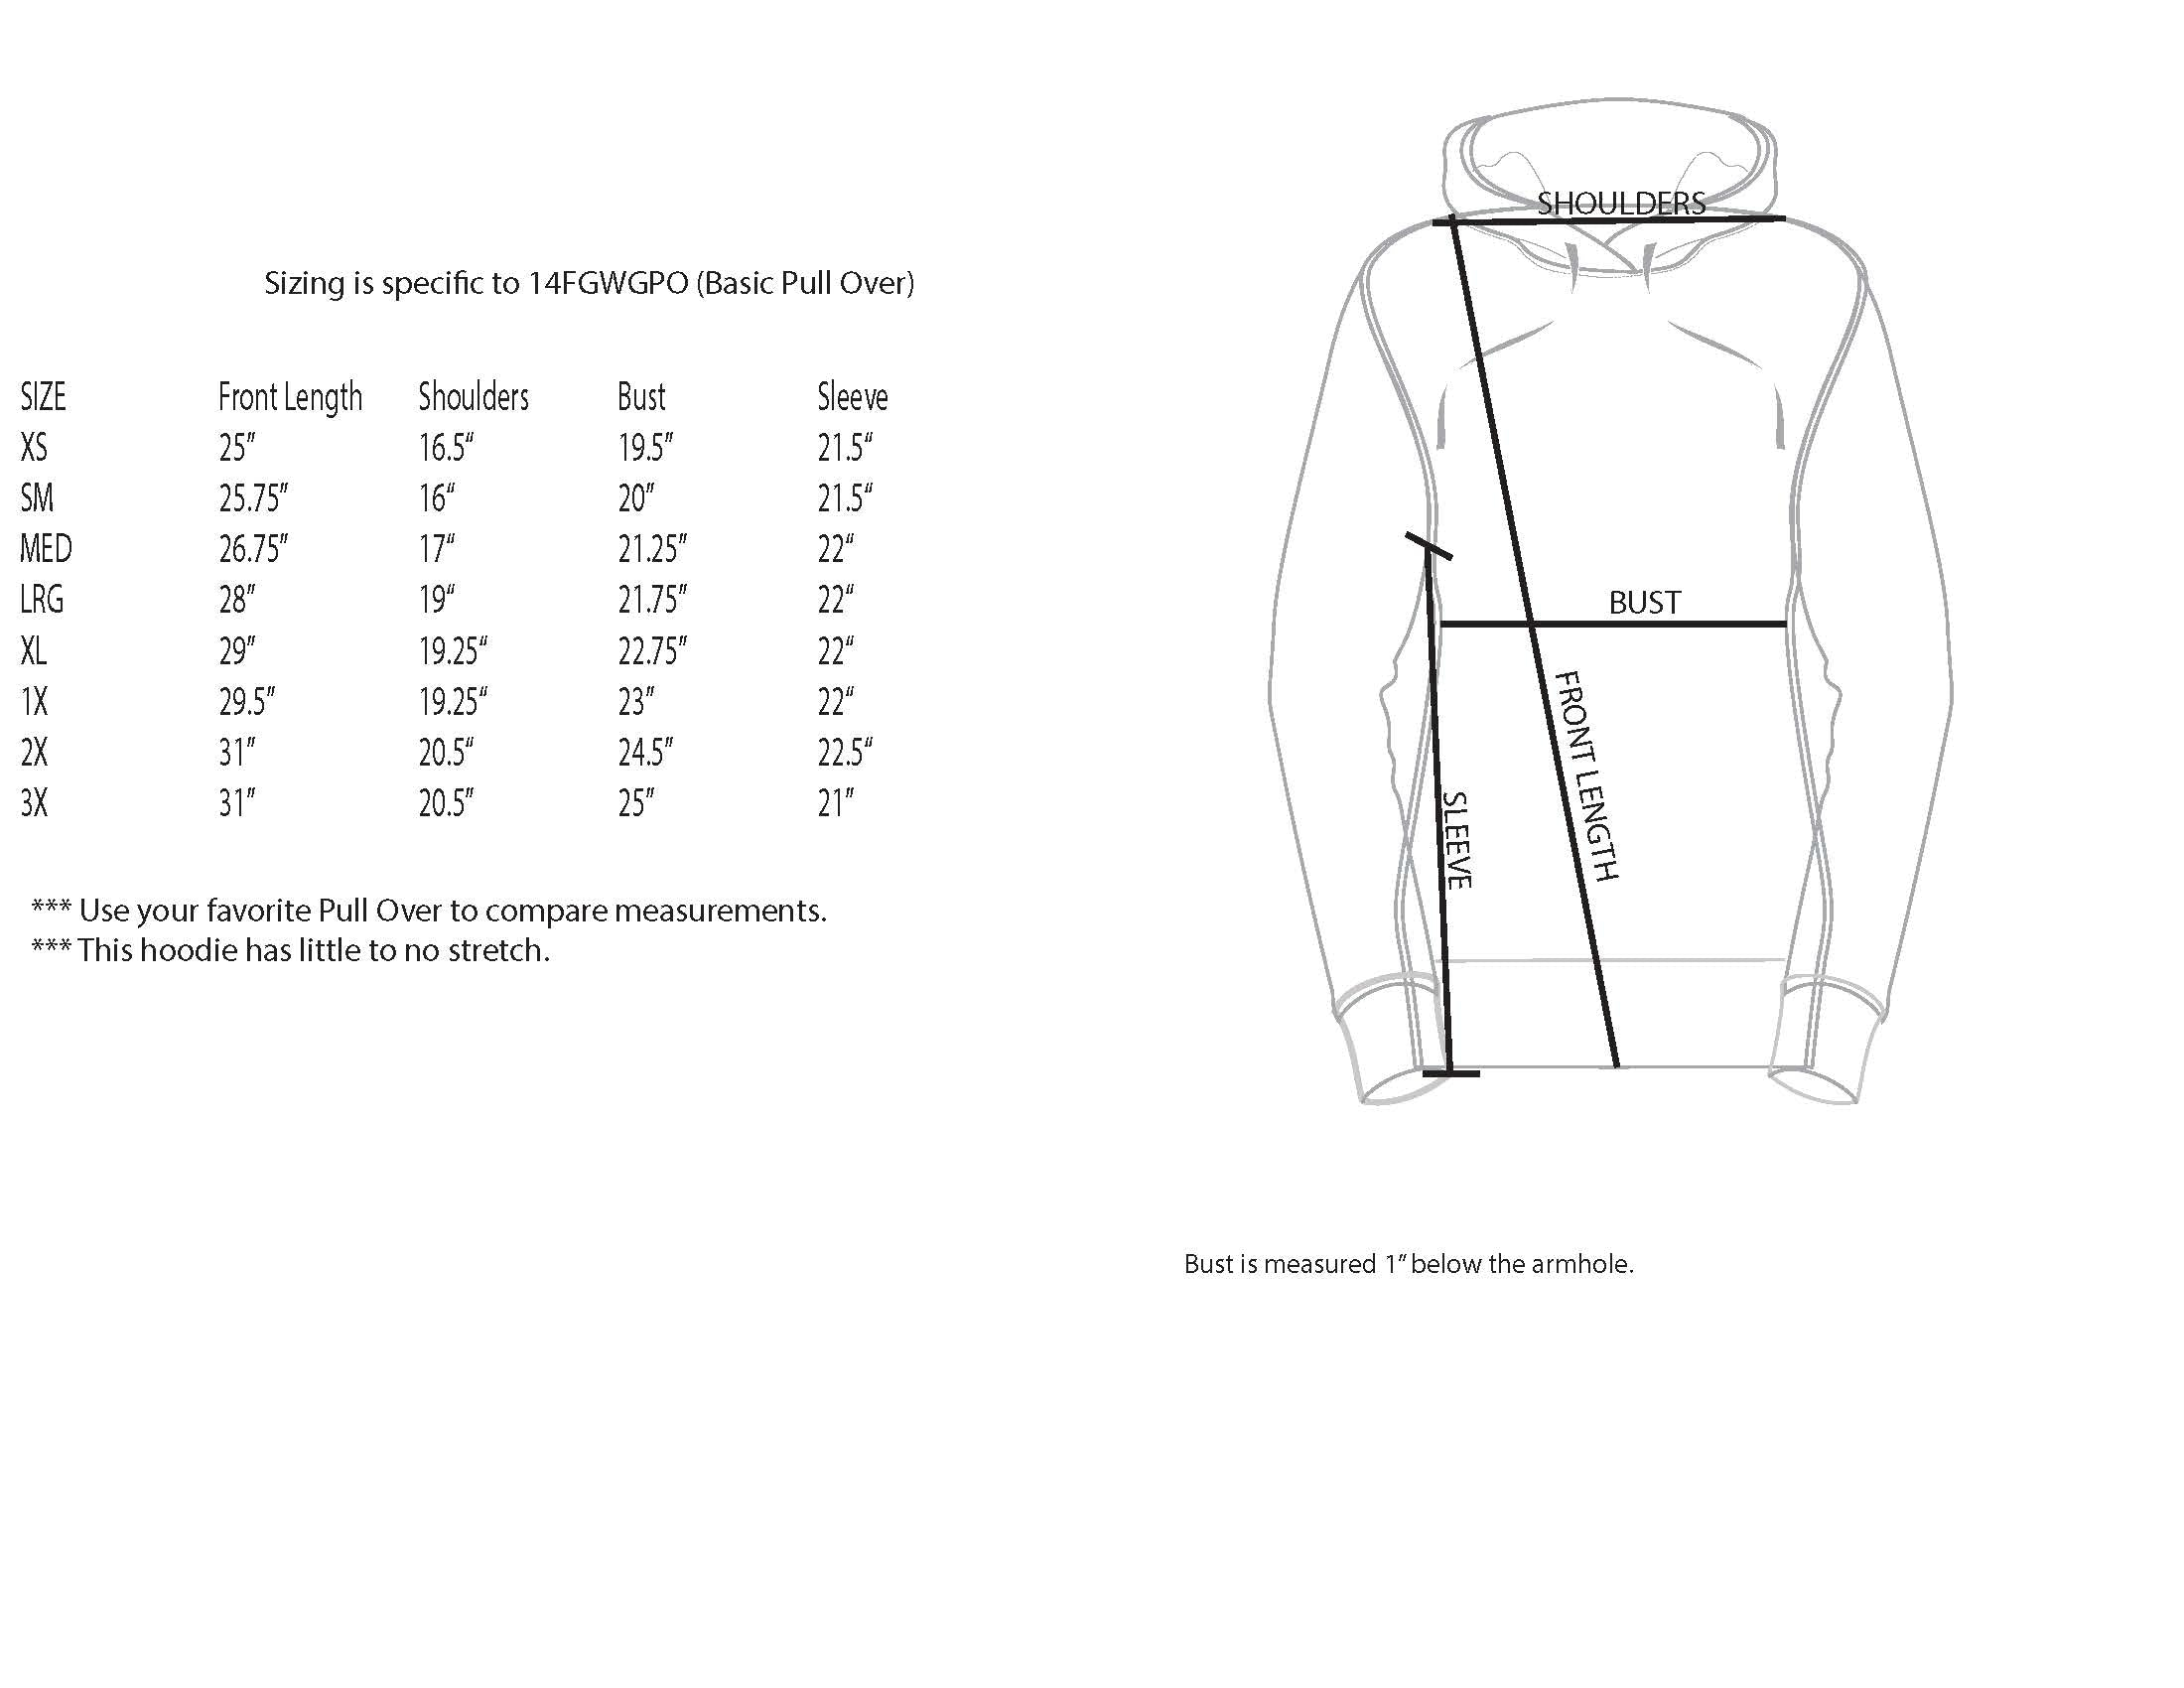 GWG Pullover Size Chart